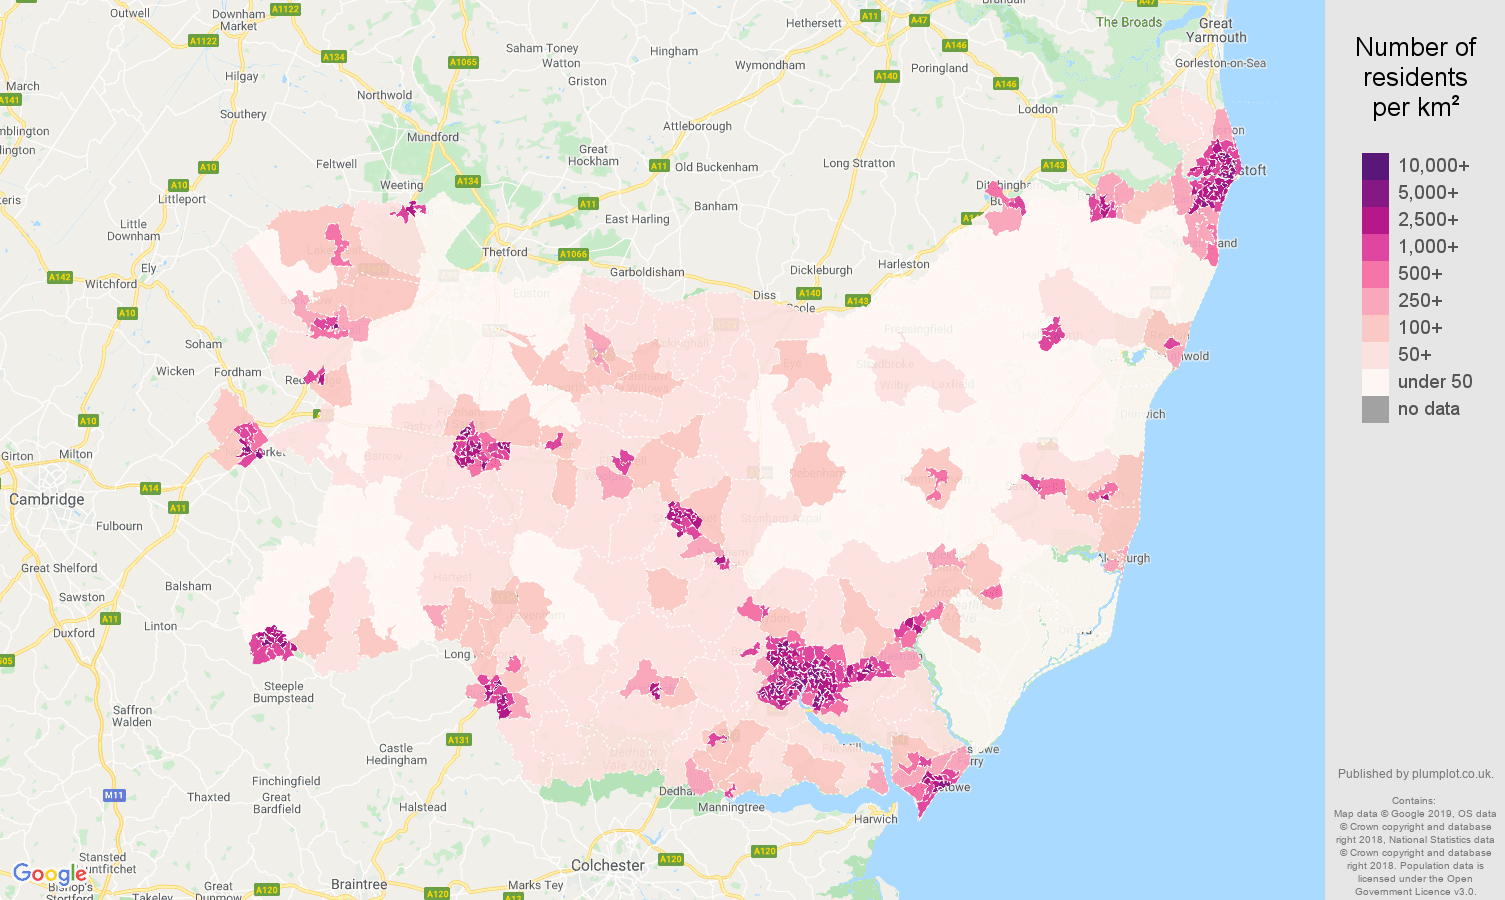 Suffolk population density map